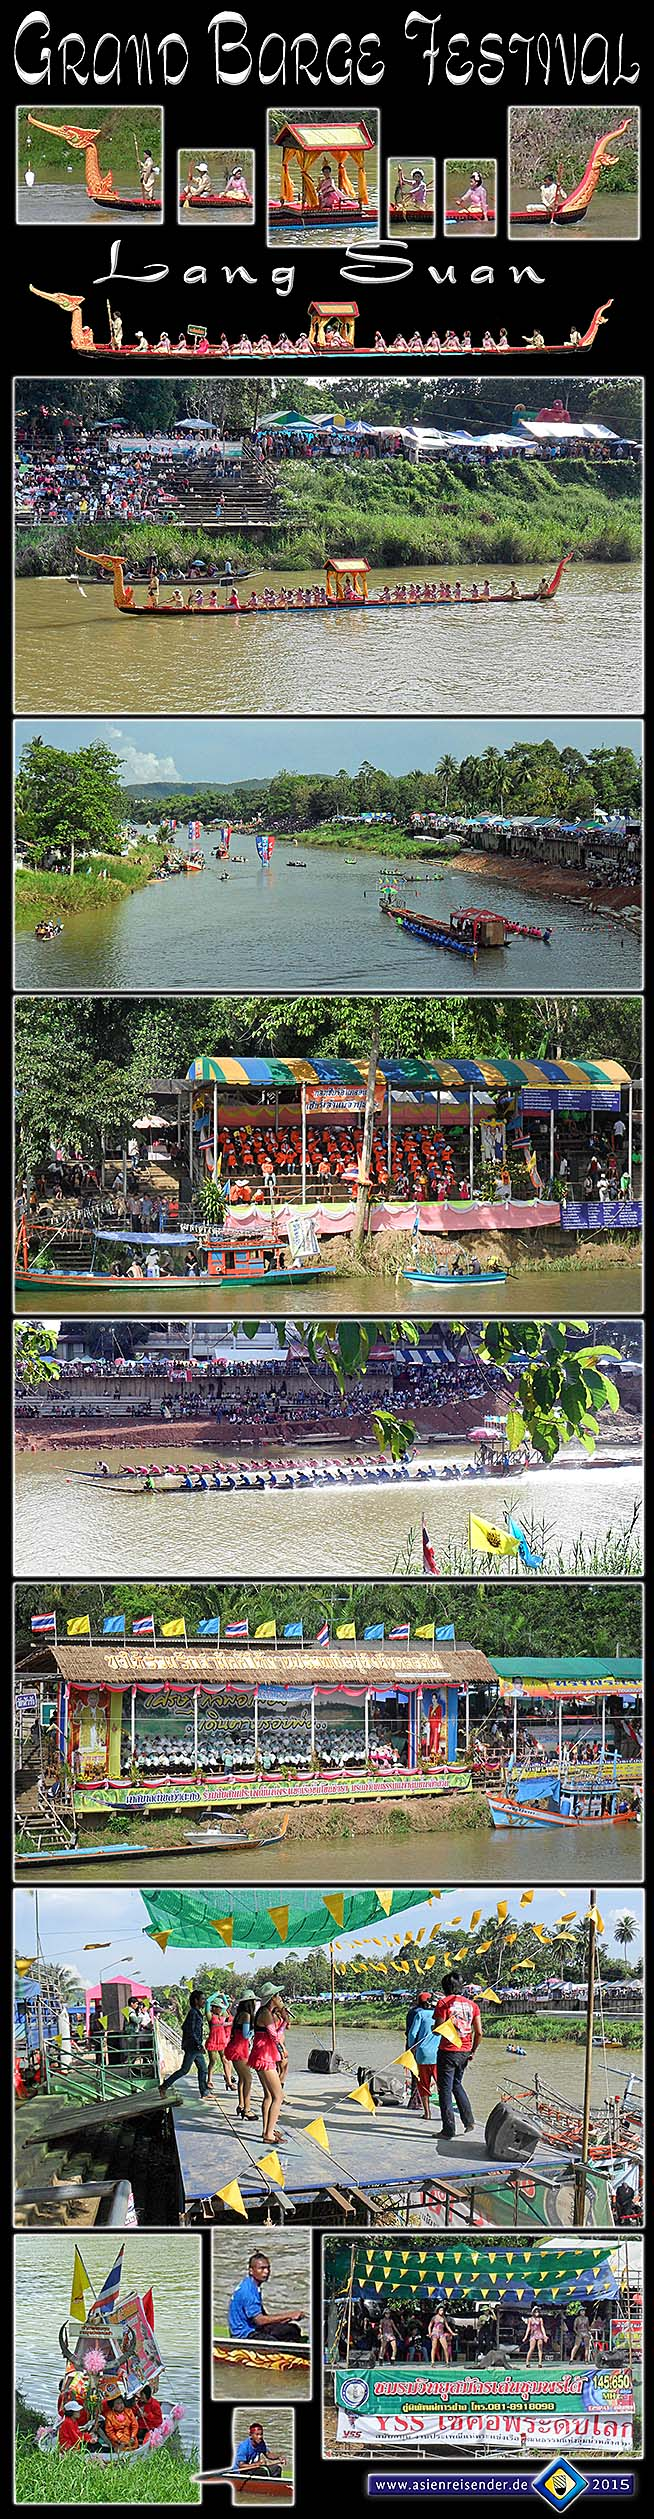 Photocomposition 'Barge Festival in Lang Suan 2012' by Asienreisender